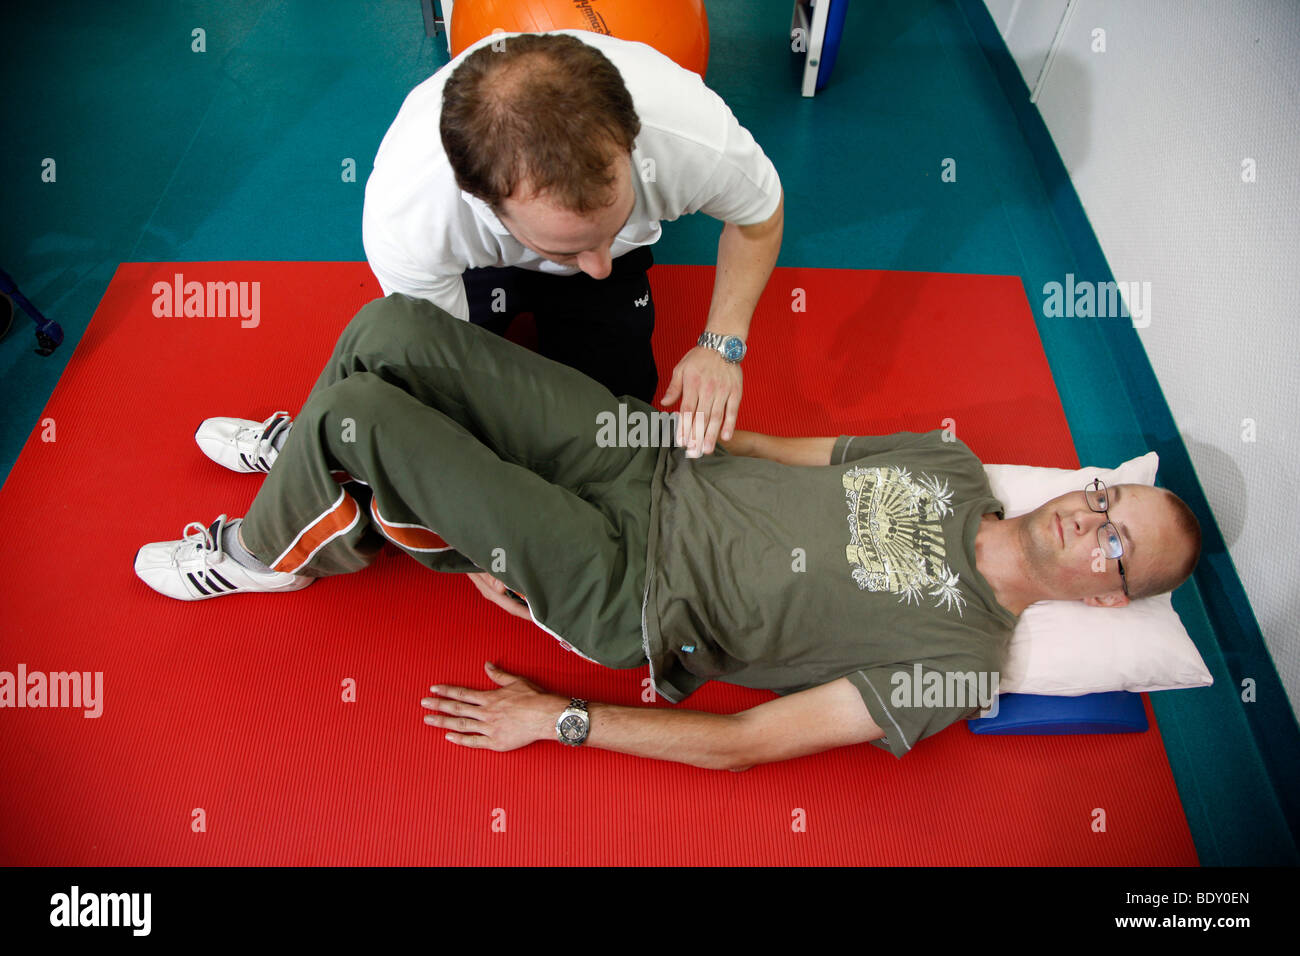 Neurological rehabilitation facility, physiotherapy and medical gymnastics, Bonn, Germany - Stock Image